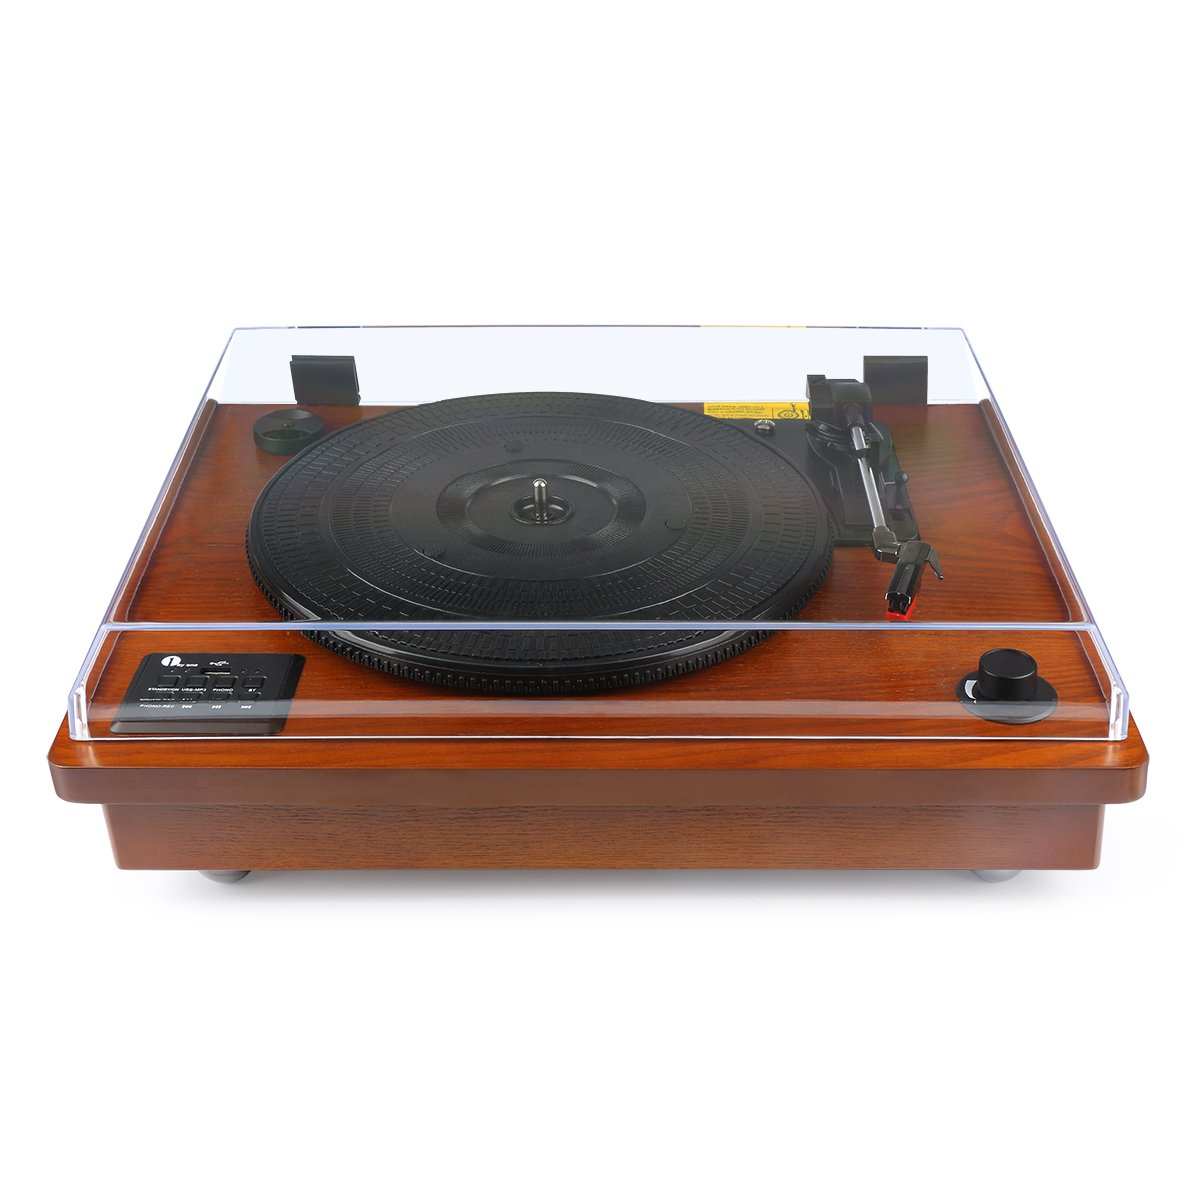 1byone belt driven bluetooth turntable with built in stereo speaker vintage style record player. Black Bedroom Furniture Sets. Home Design Ideas